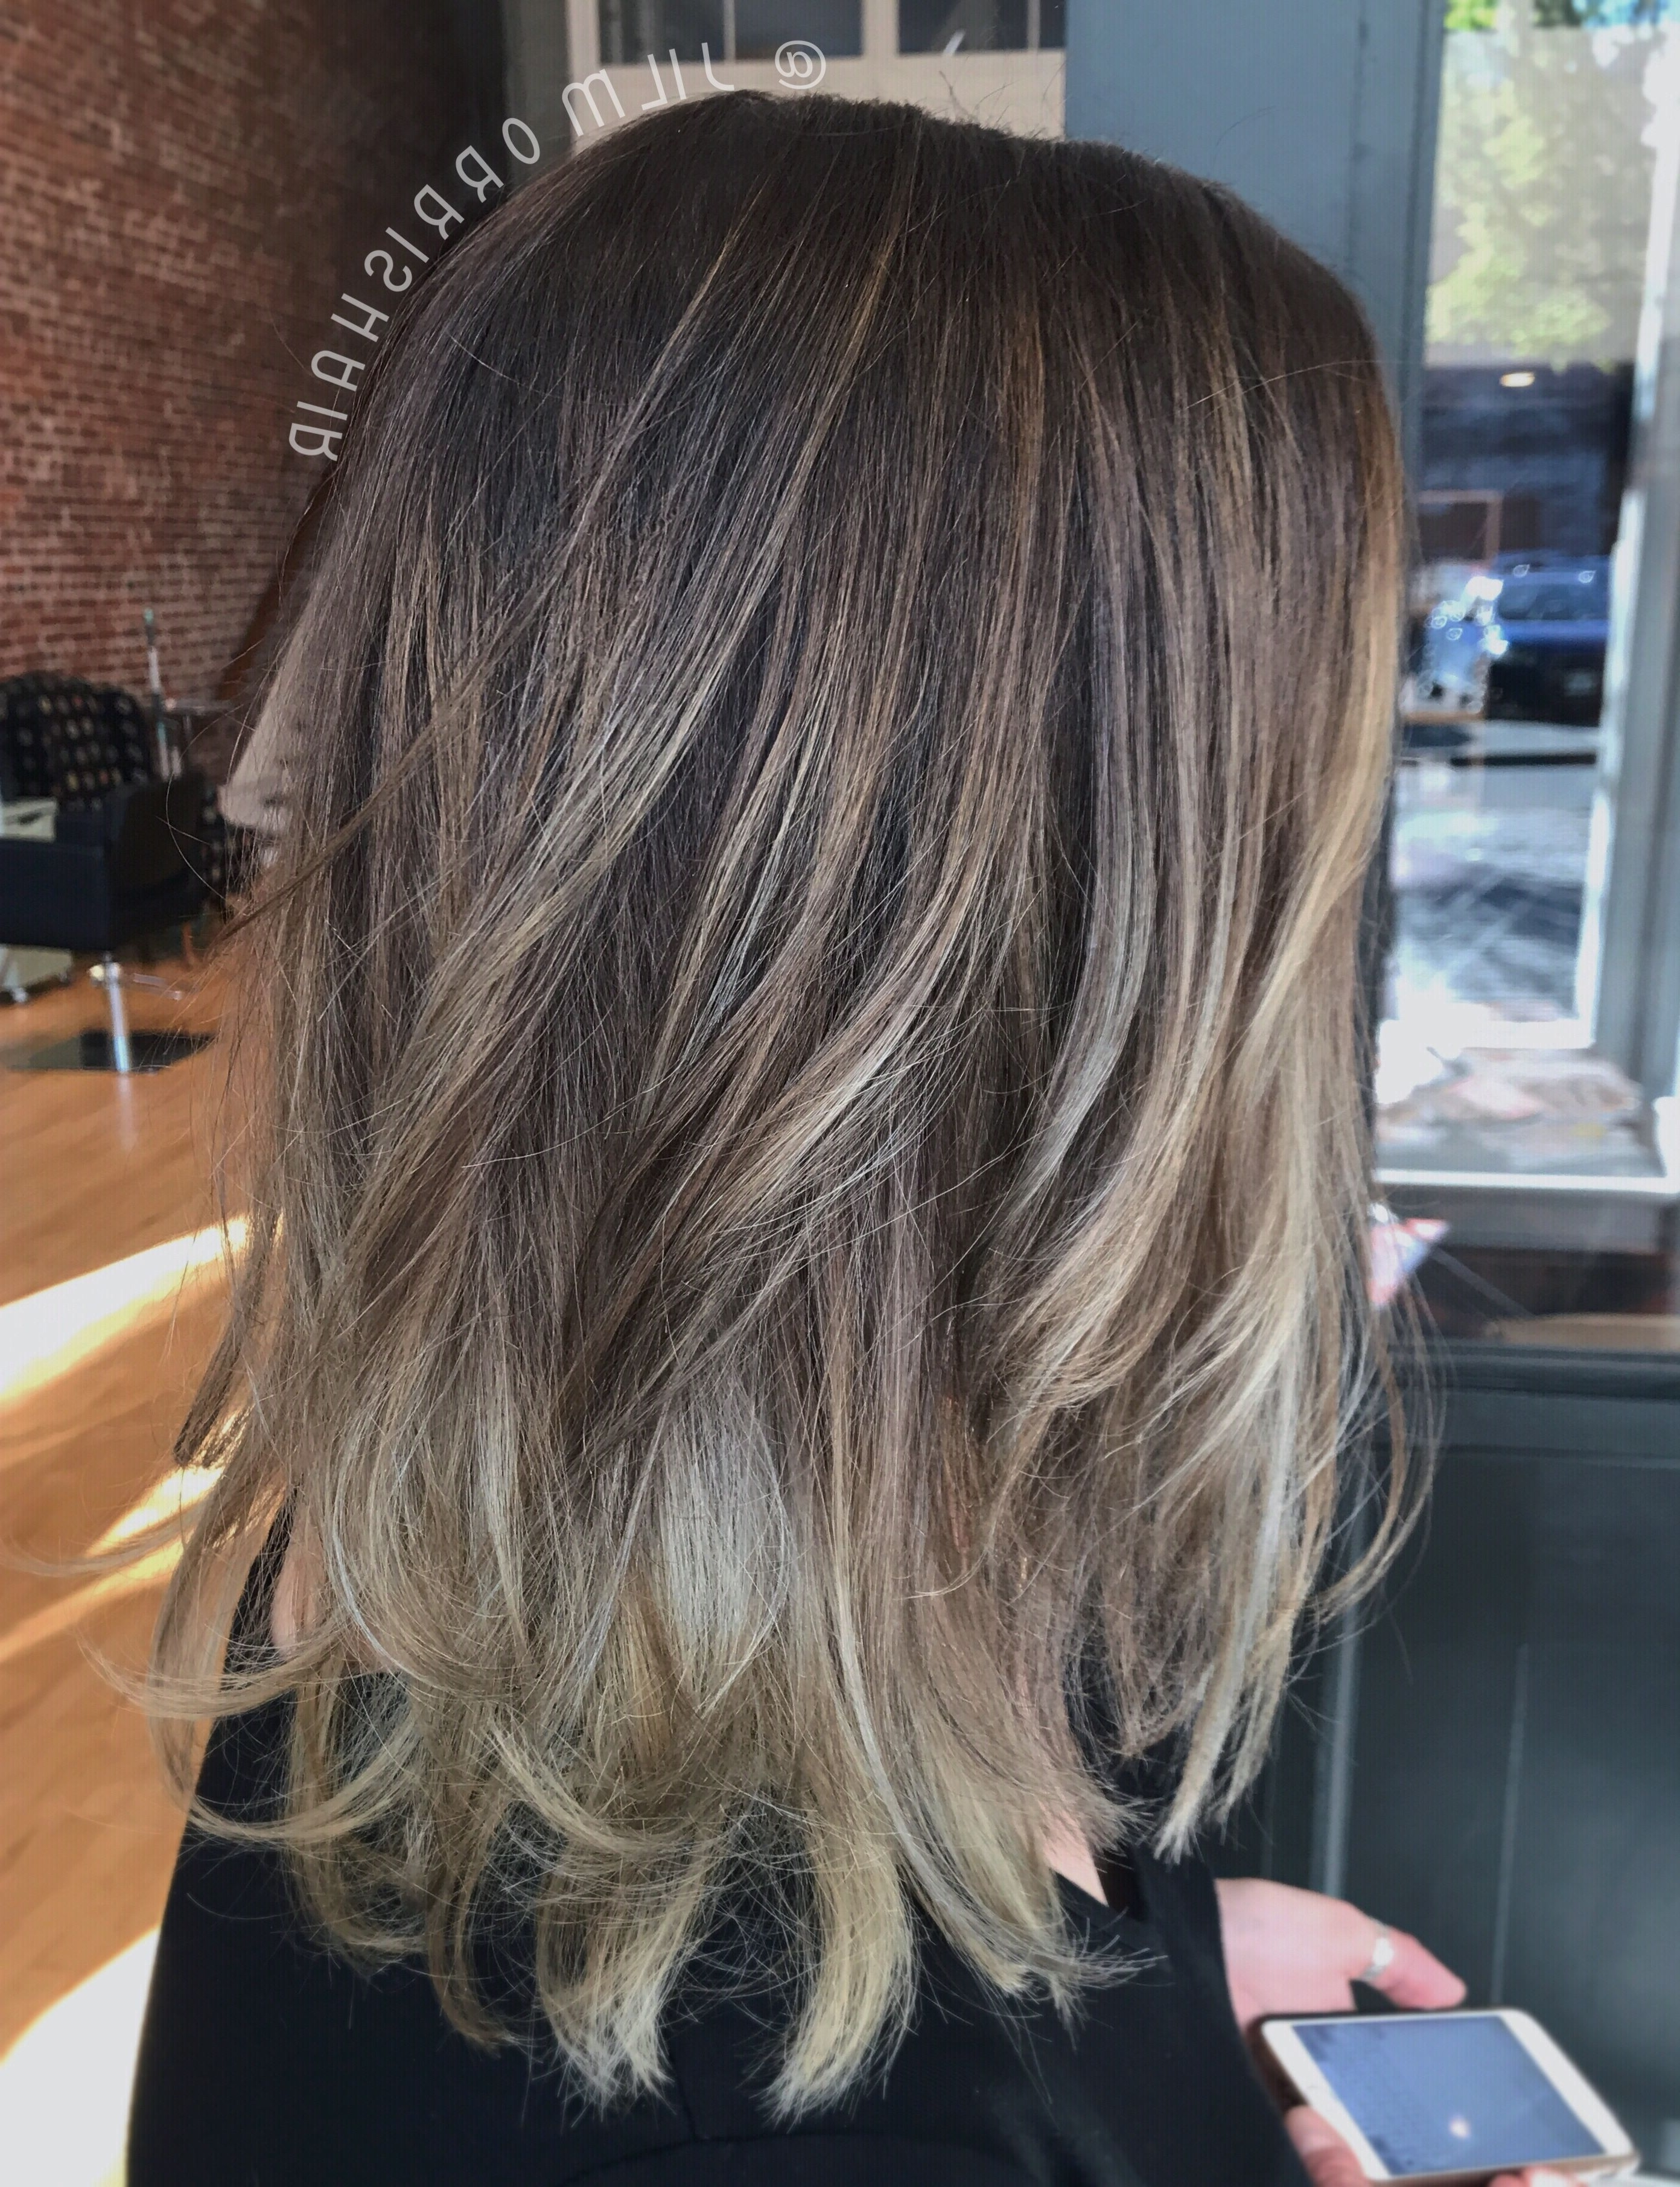 Trendy Light Ash Locks Blonde Hairstyles With Regard To Dark Ash Blonde Sombré, Balayage Highlights With Rooty Lowlights (View 4 of 20)